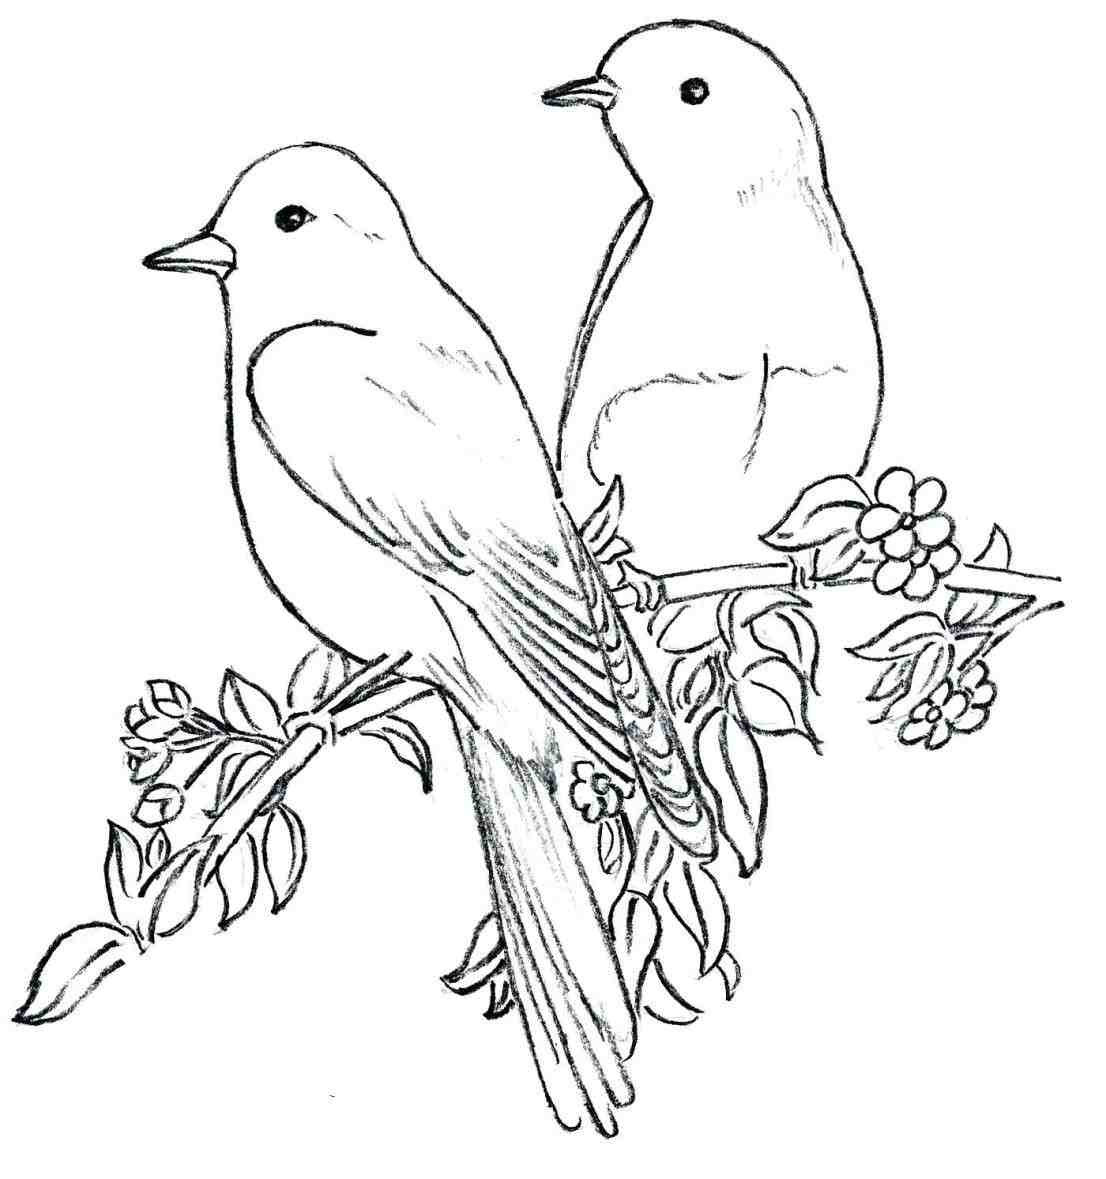 Bird Outline Drawing At Getdrawings